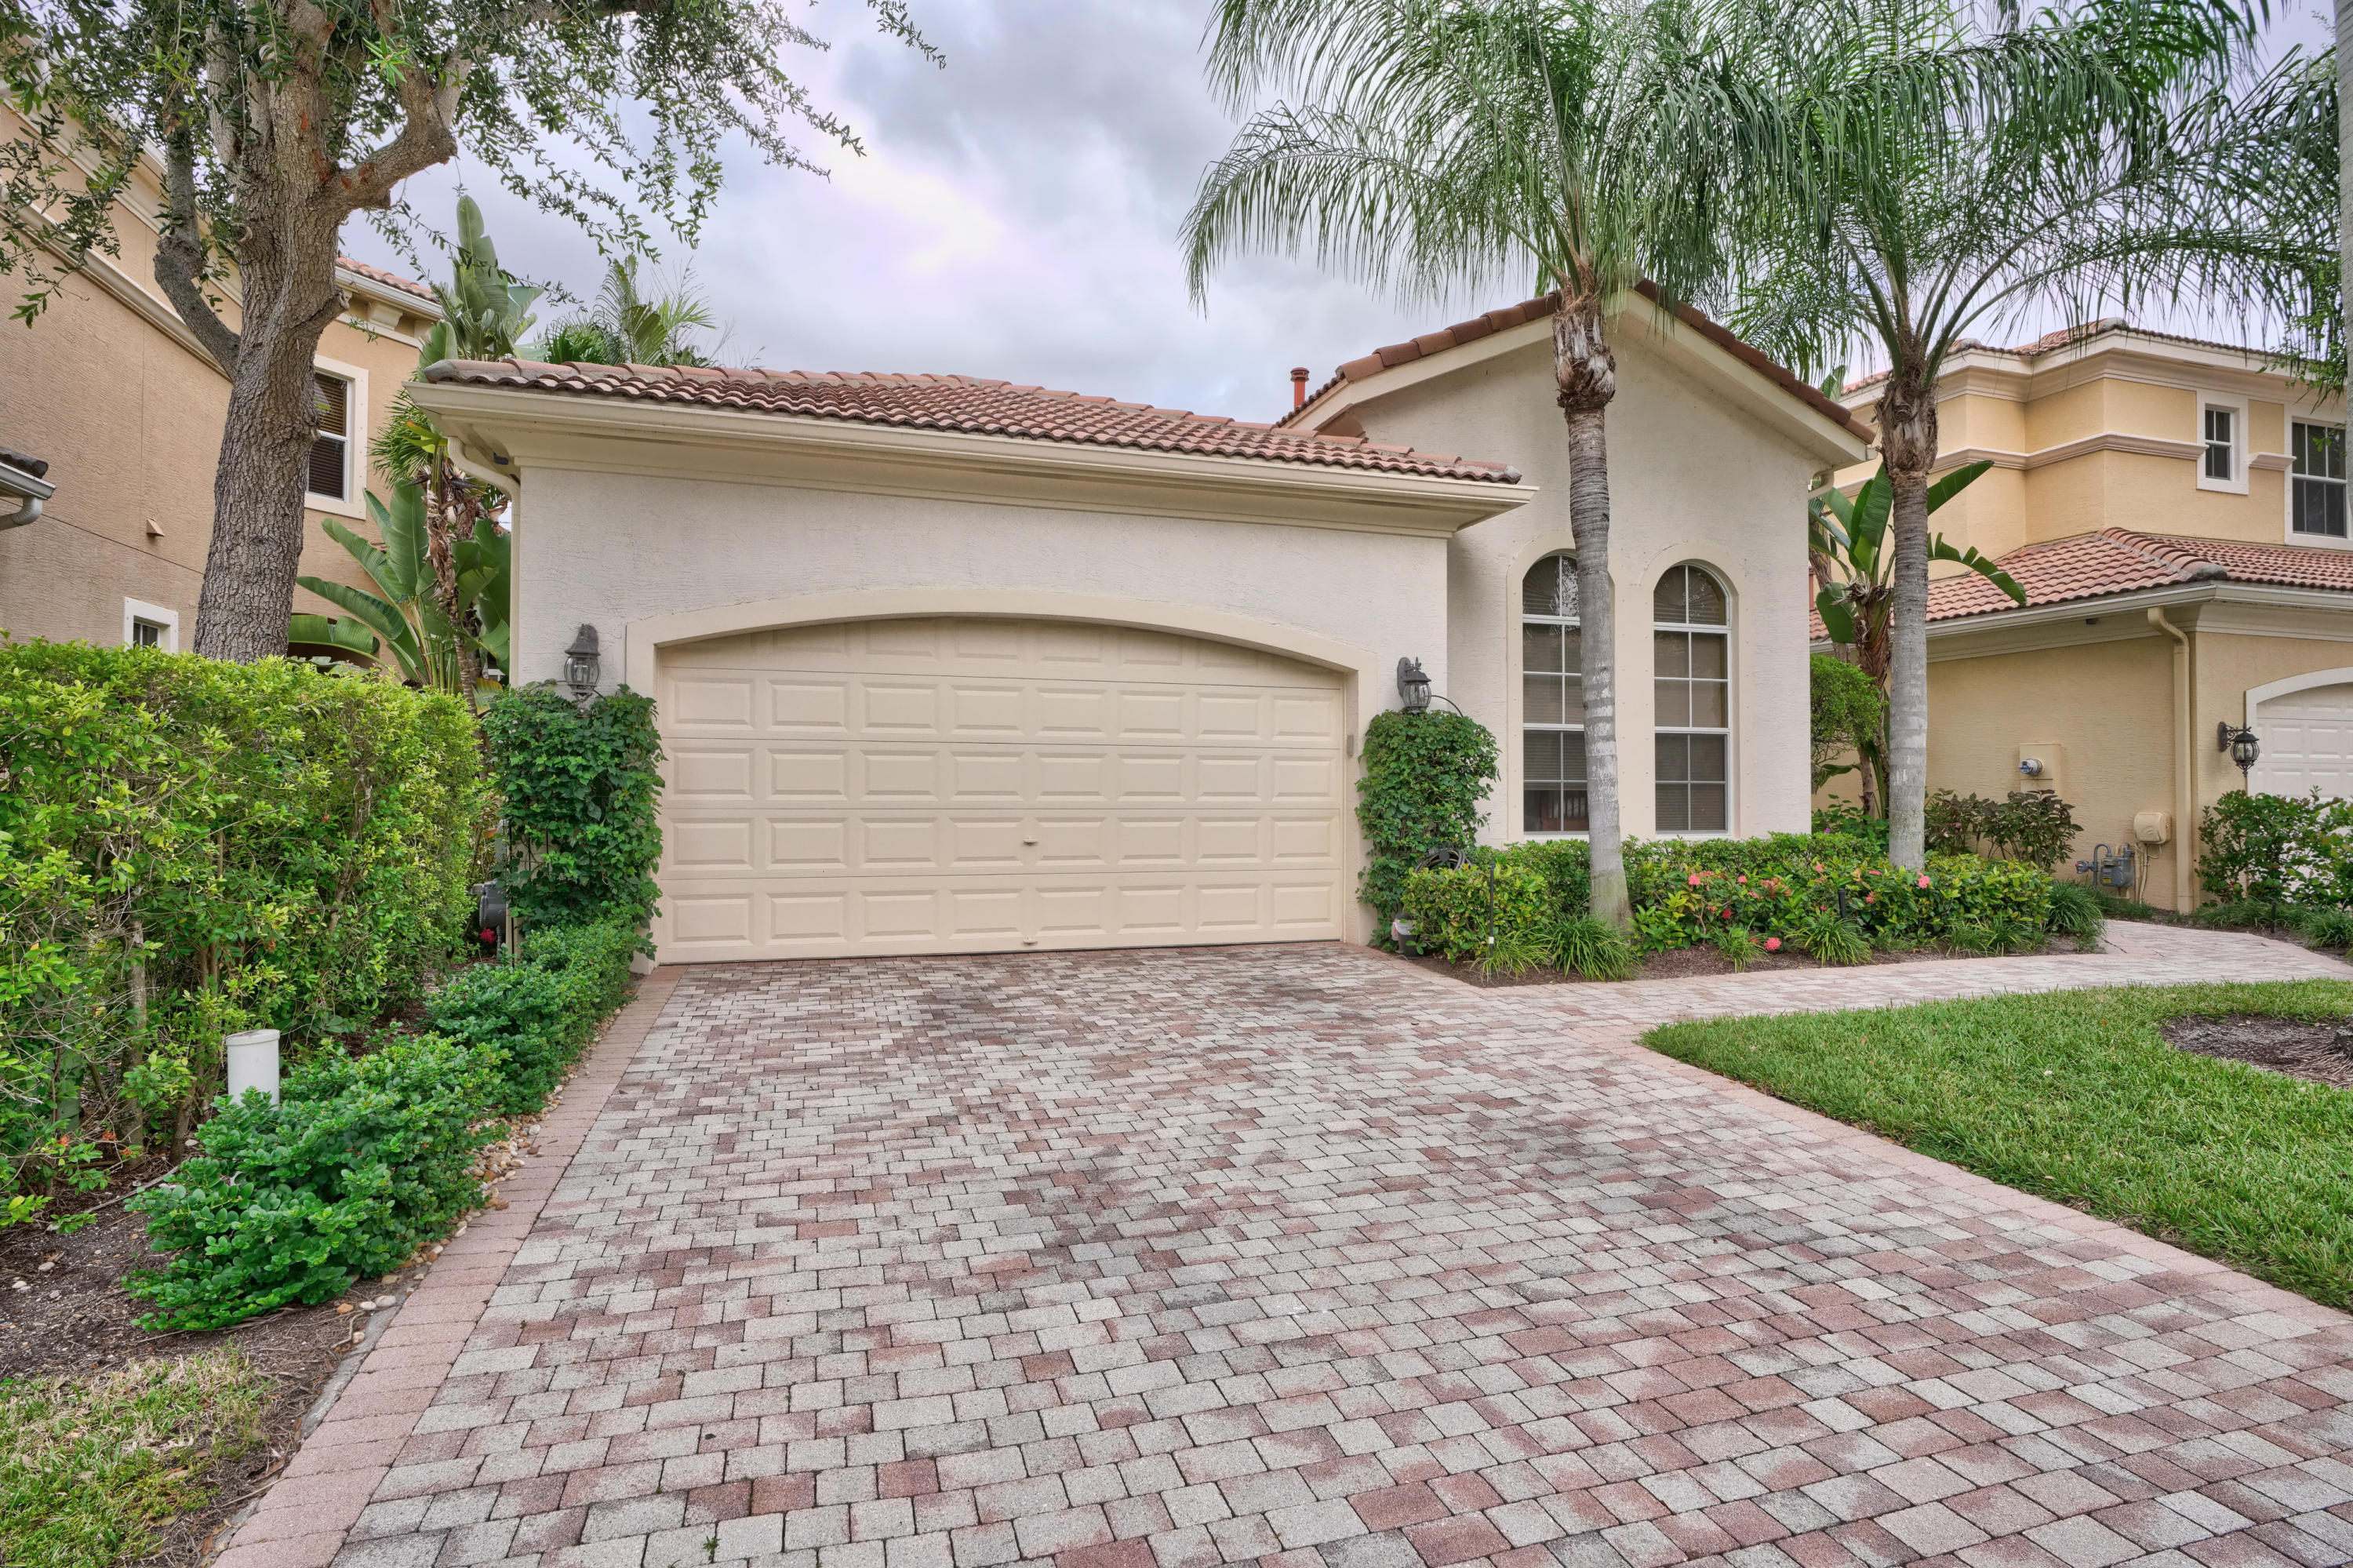 215 Andalusia Drive, Palm Beach Gardens, Florida 33418, 3 Bedrooms Bedrooms, ,2.1 BathroomsBathrooms,A,Single family,Andalusia,RX-10563965